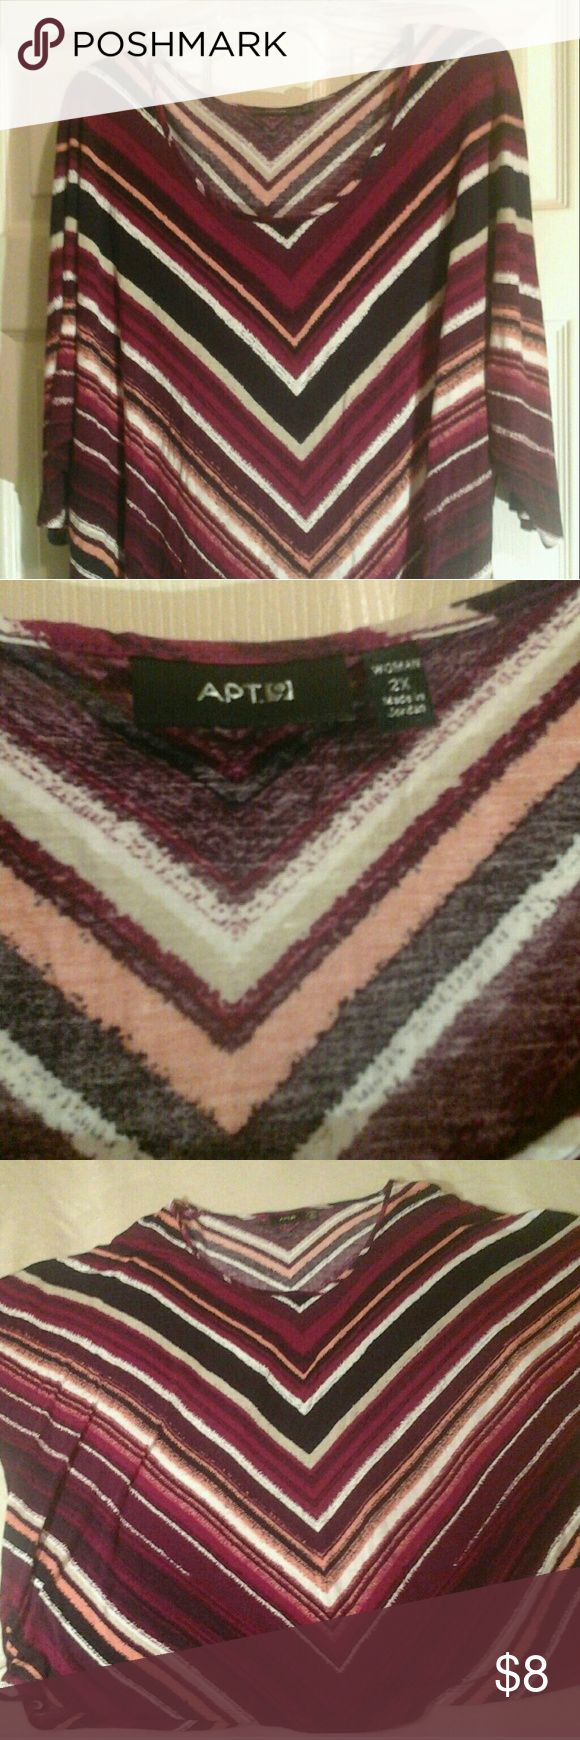 Apt 9 Chevron Batwing Top 2X CHEVRON STRIPS IN VARYING SHADES OF PURPLE AND WHITE?  BATWING SLEEVES?  APT 9?  SIZE 2X?  3/4 SLEEVE?  100% RAYON?  SUPER SOFT?  STRETCHY?  ARMPIT TO ARMPIT 30 INCHES, BUT IT IS BATWING?  SHOULDER TO BOTTOM 24 INCHES? Apt. 9 Tops Tees - Long Sleeve